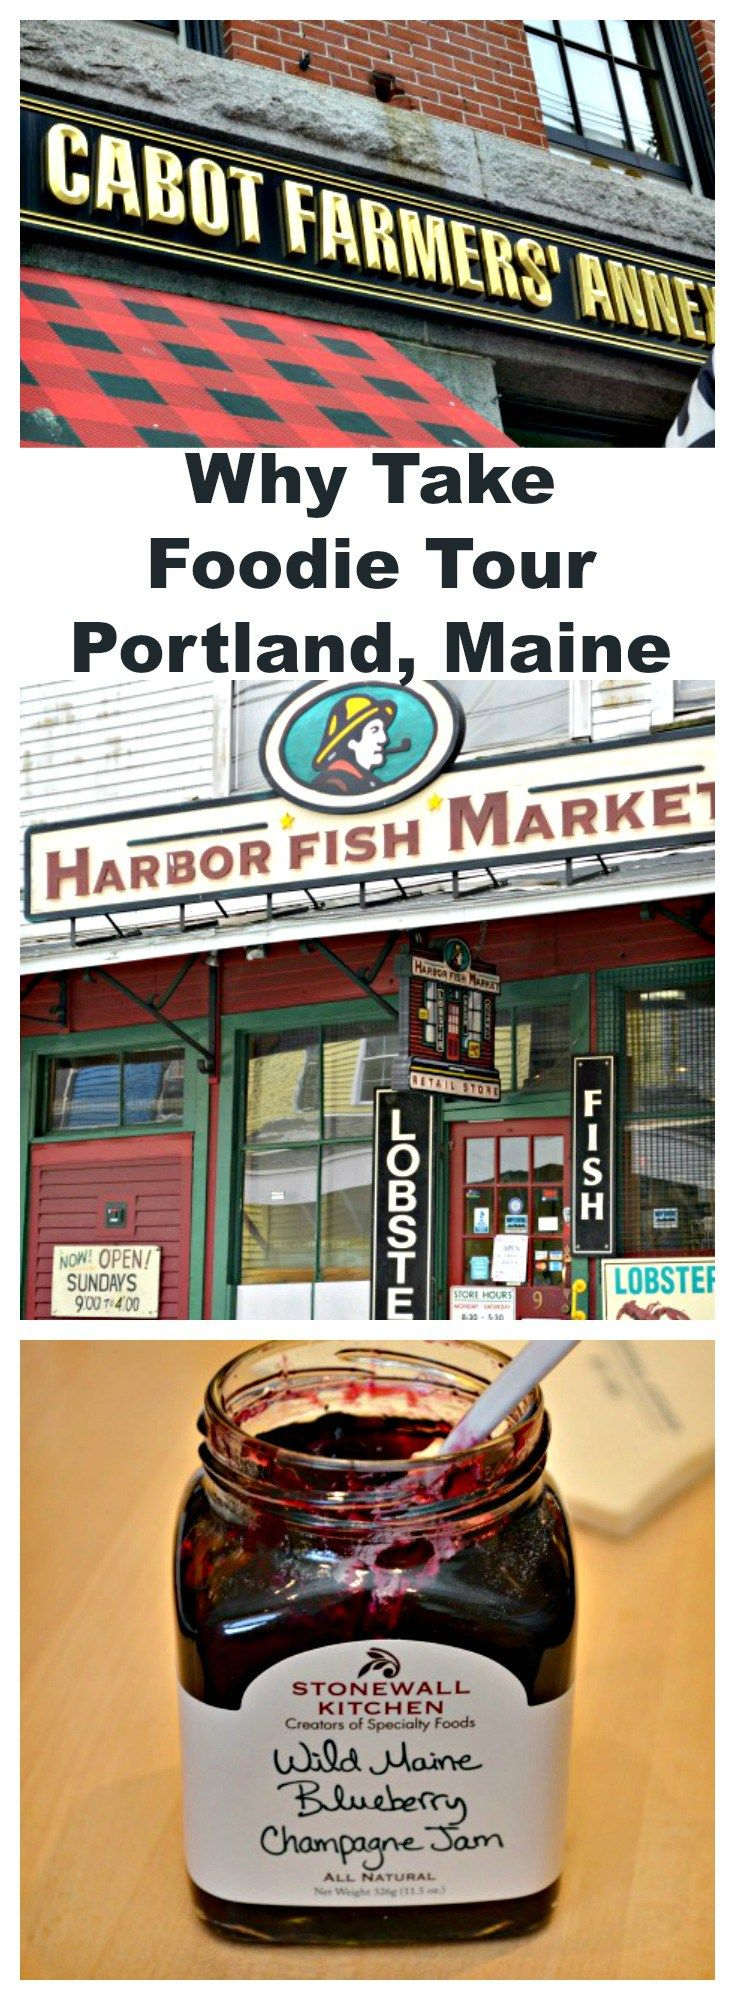 #Why Take Foodie Tour Portland, Maine - If you have never been on a Foodie Tour and you love food, you are missing out! Learn what and where the locals eat by taking the #Foodie #Tour #Portland, #Maine. #tourism #vacation